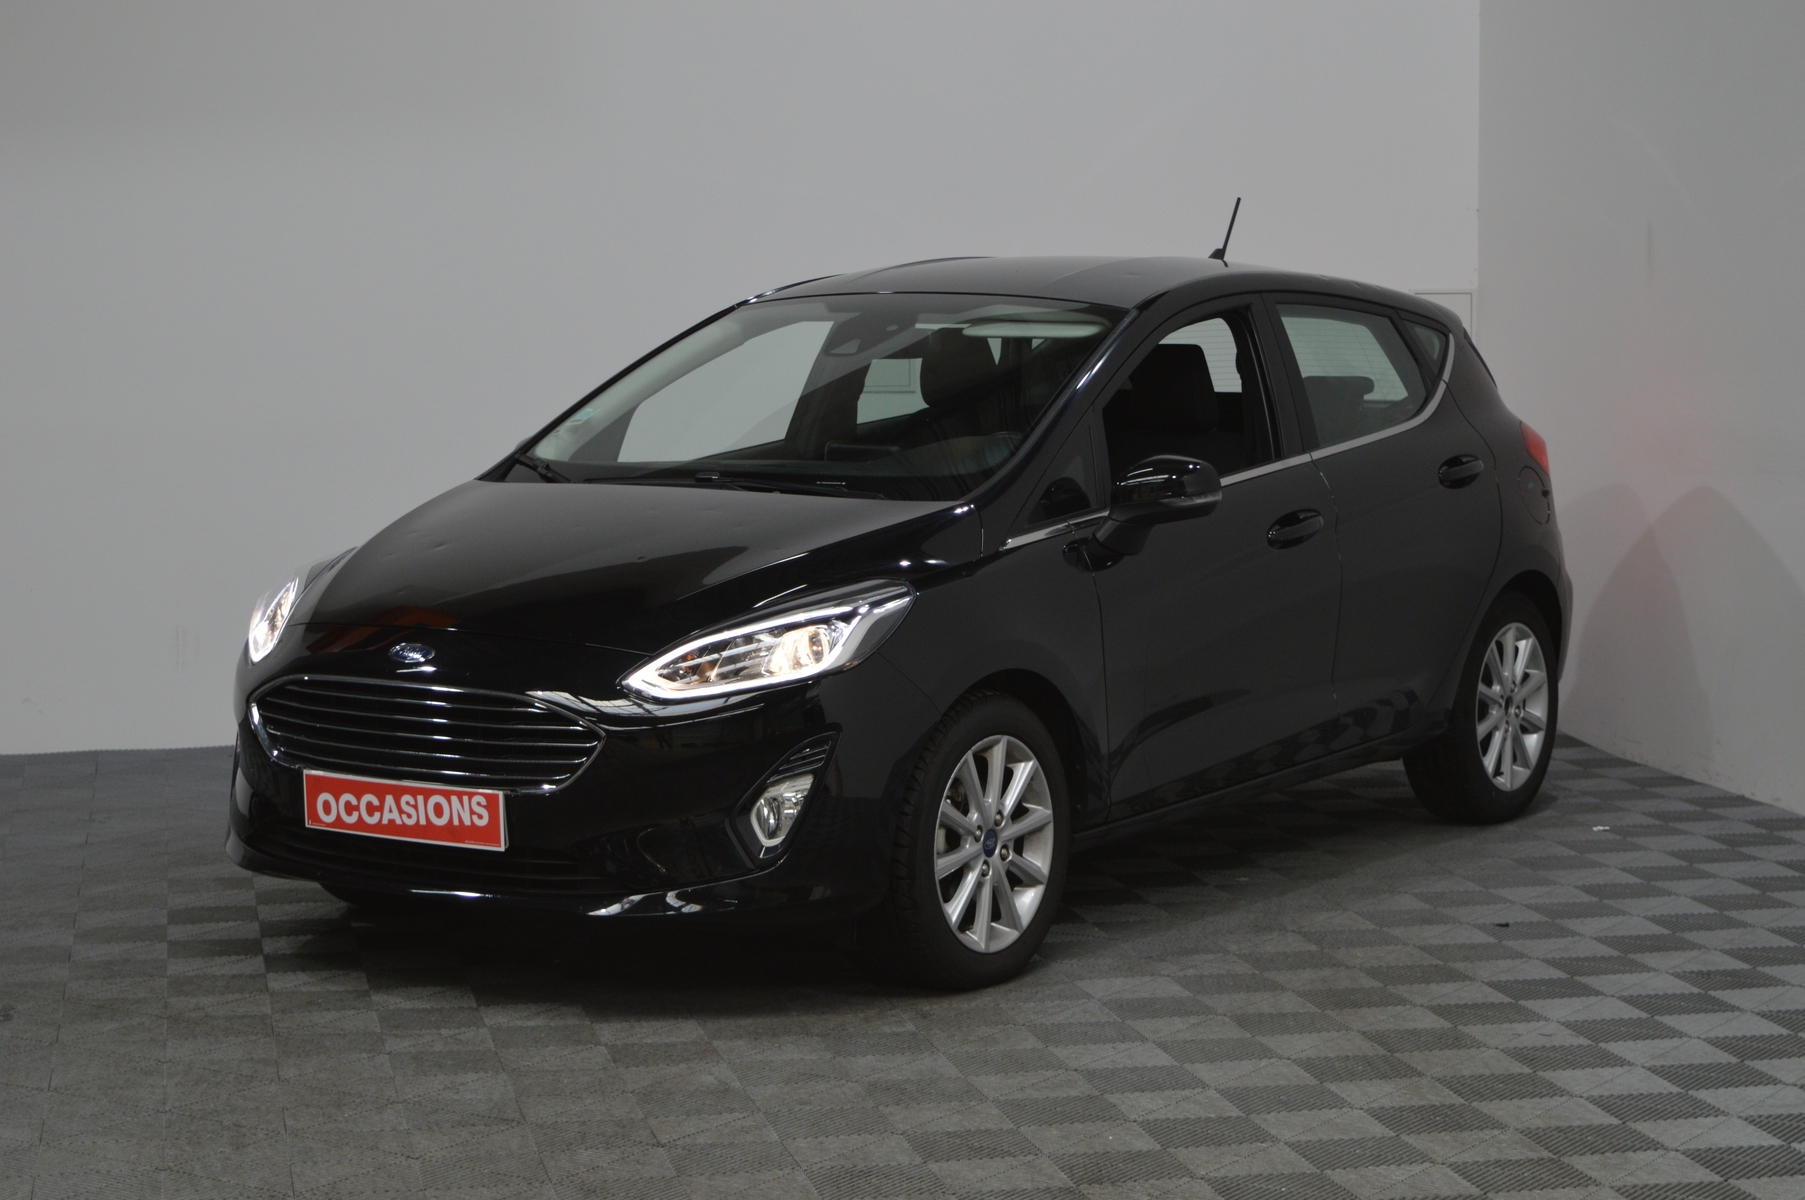 FORD FIESTA 1.0 Ecoboost 100 S&S BVM6 Titanium d'occasion